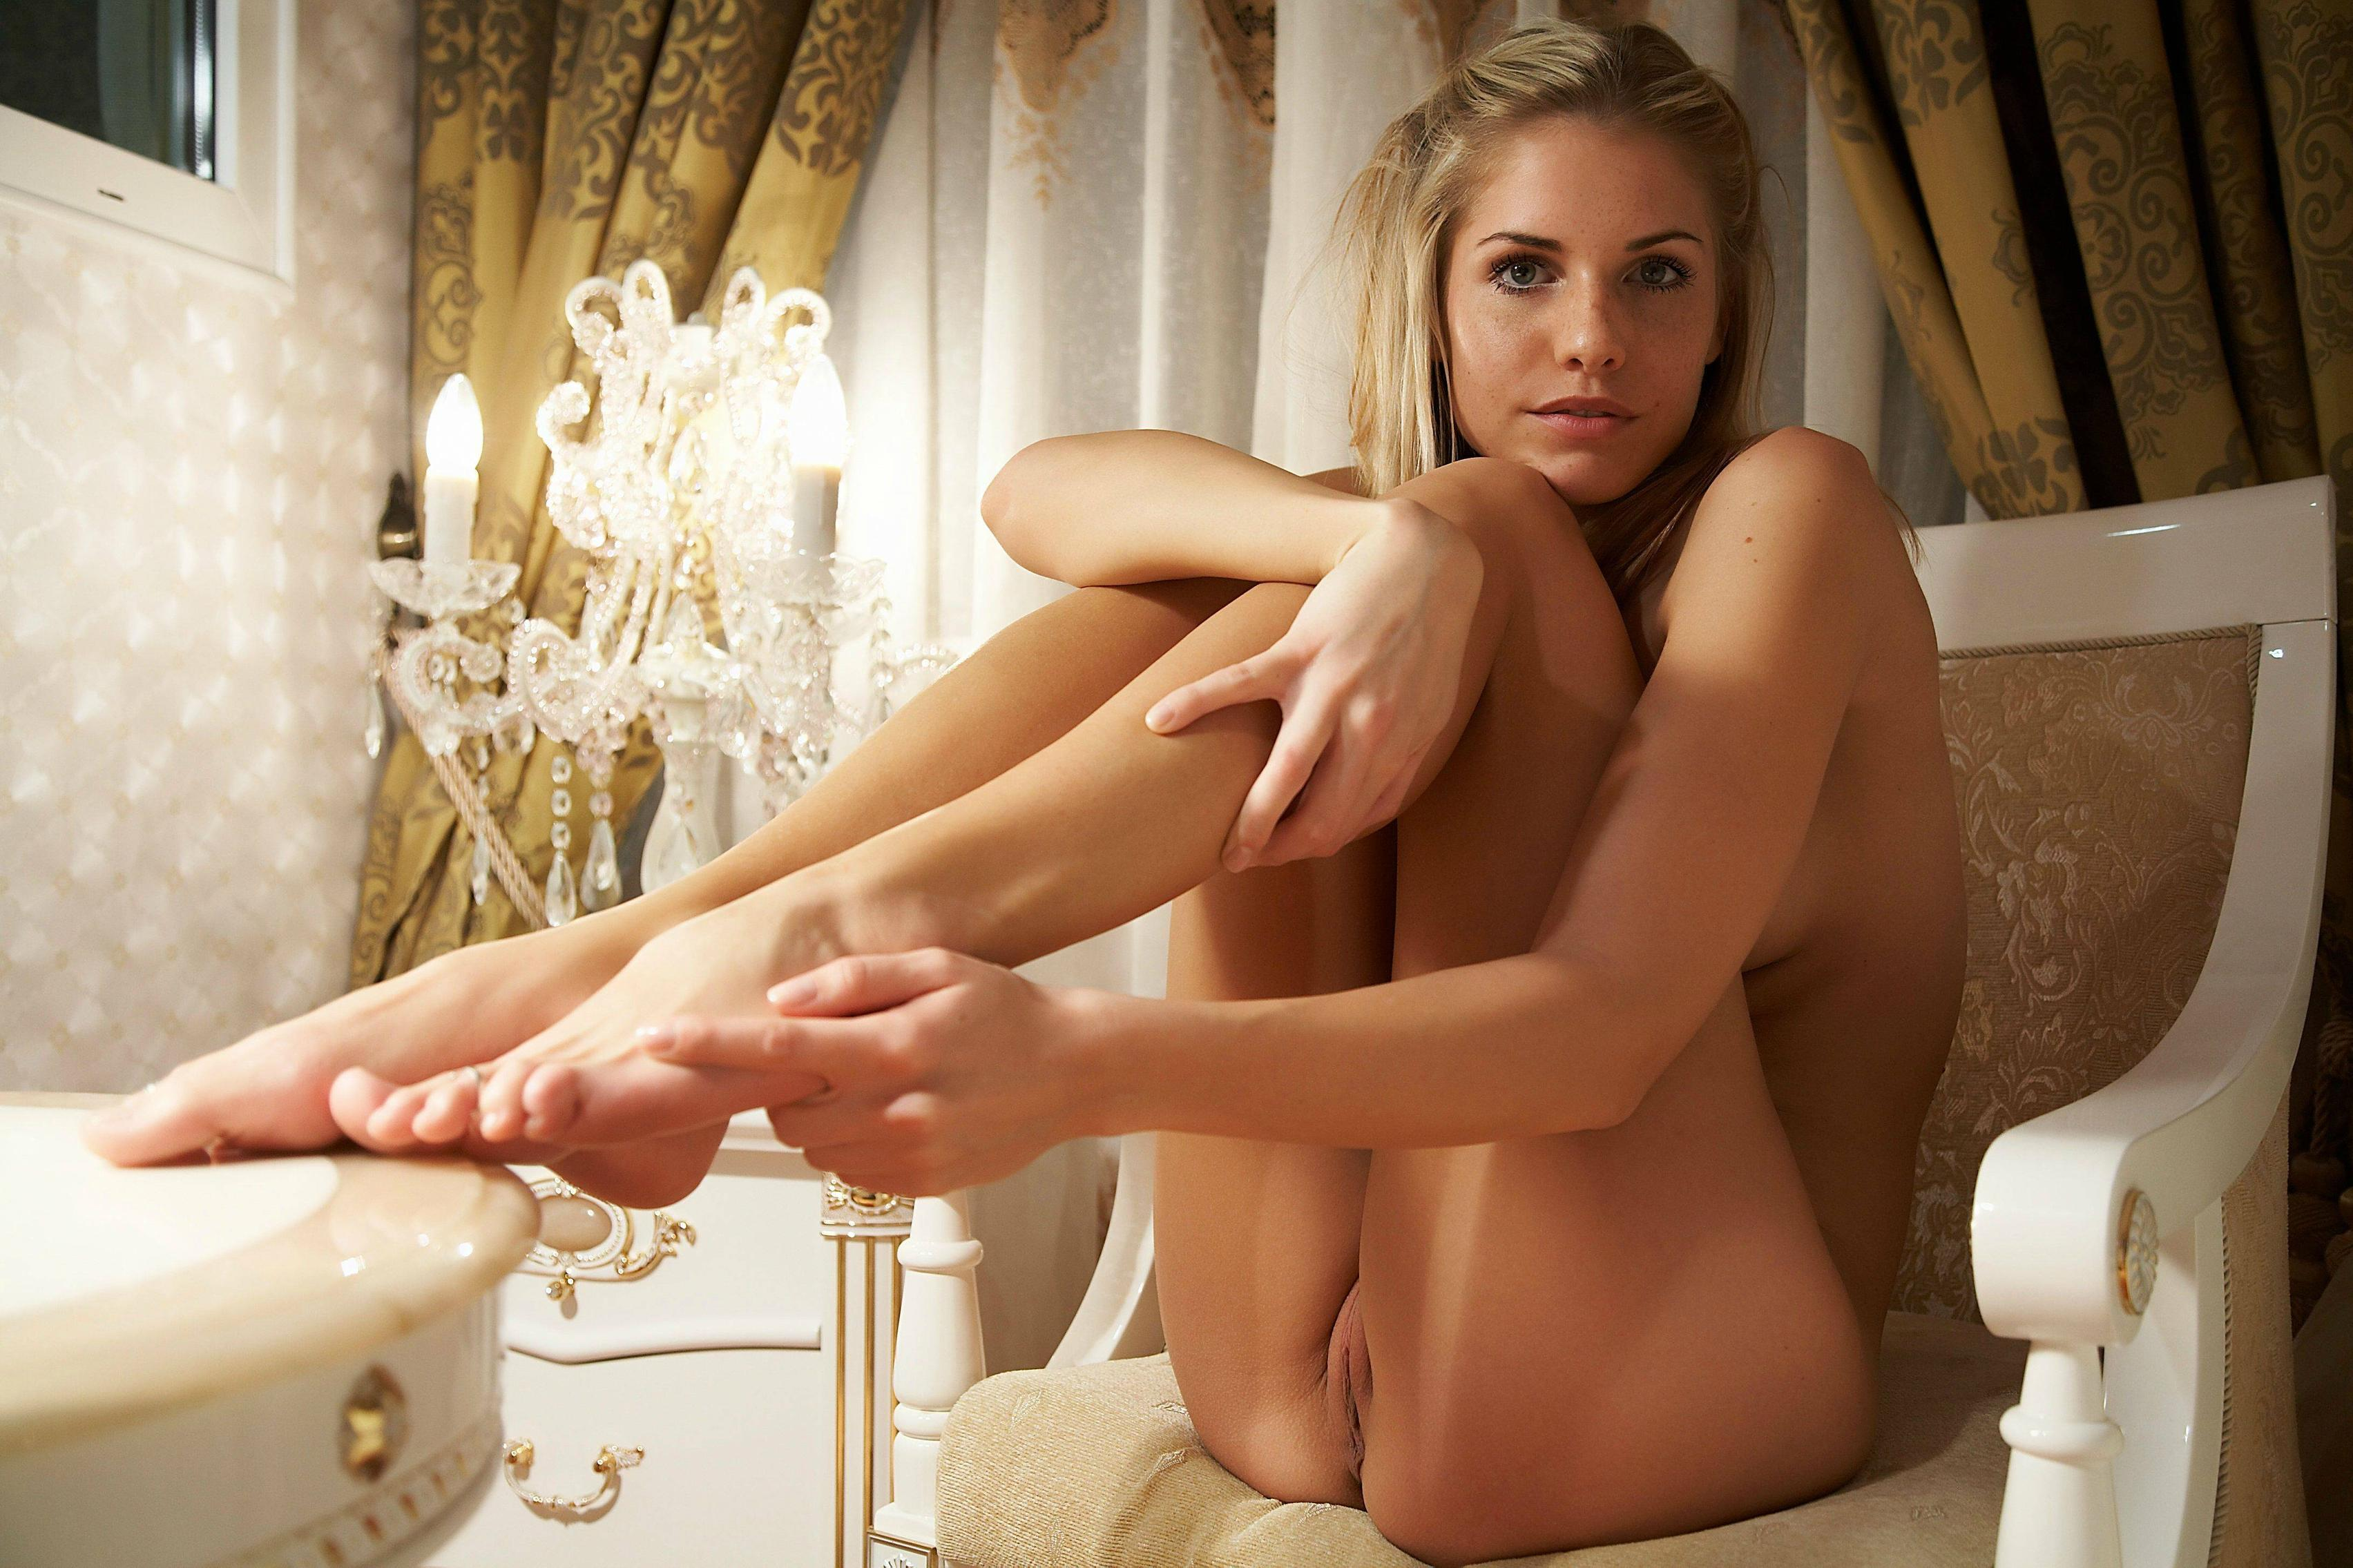 feet-fetish-nude-girls-foot-mix-vol5-34